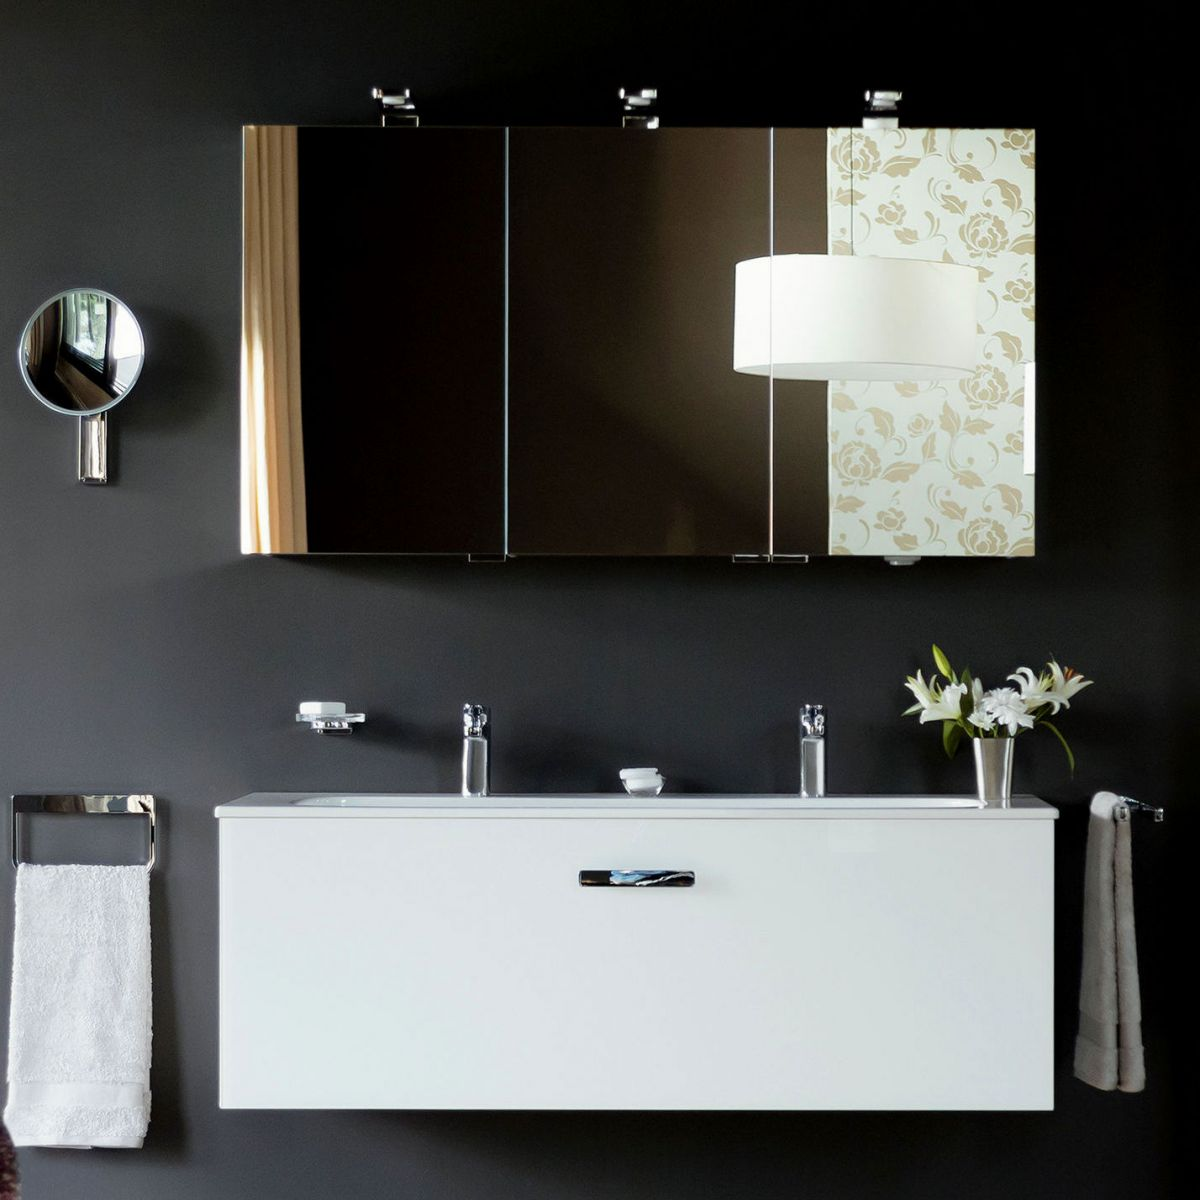 bathroom wall cabinets mirror keuco royal universe illuminated mirror cabinet uk bathrooms 17105